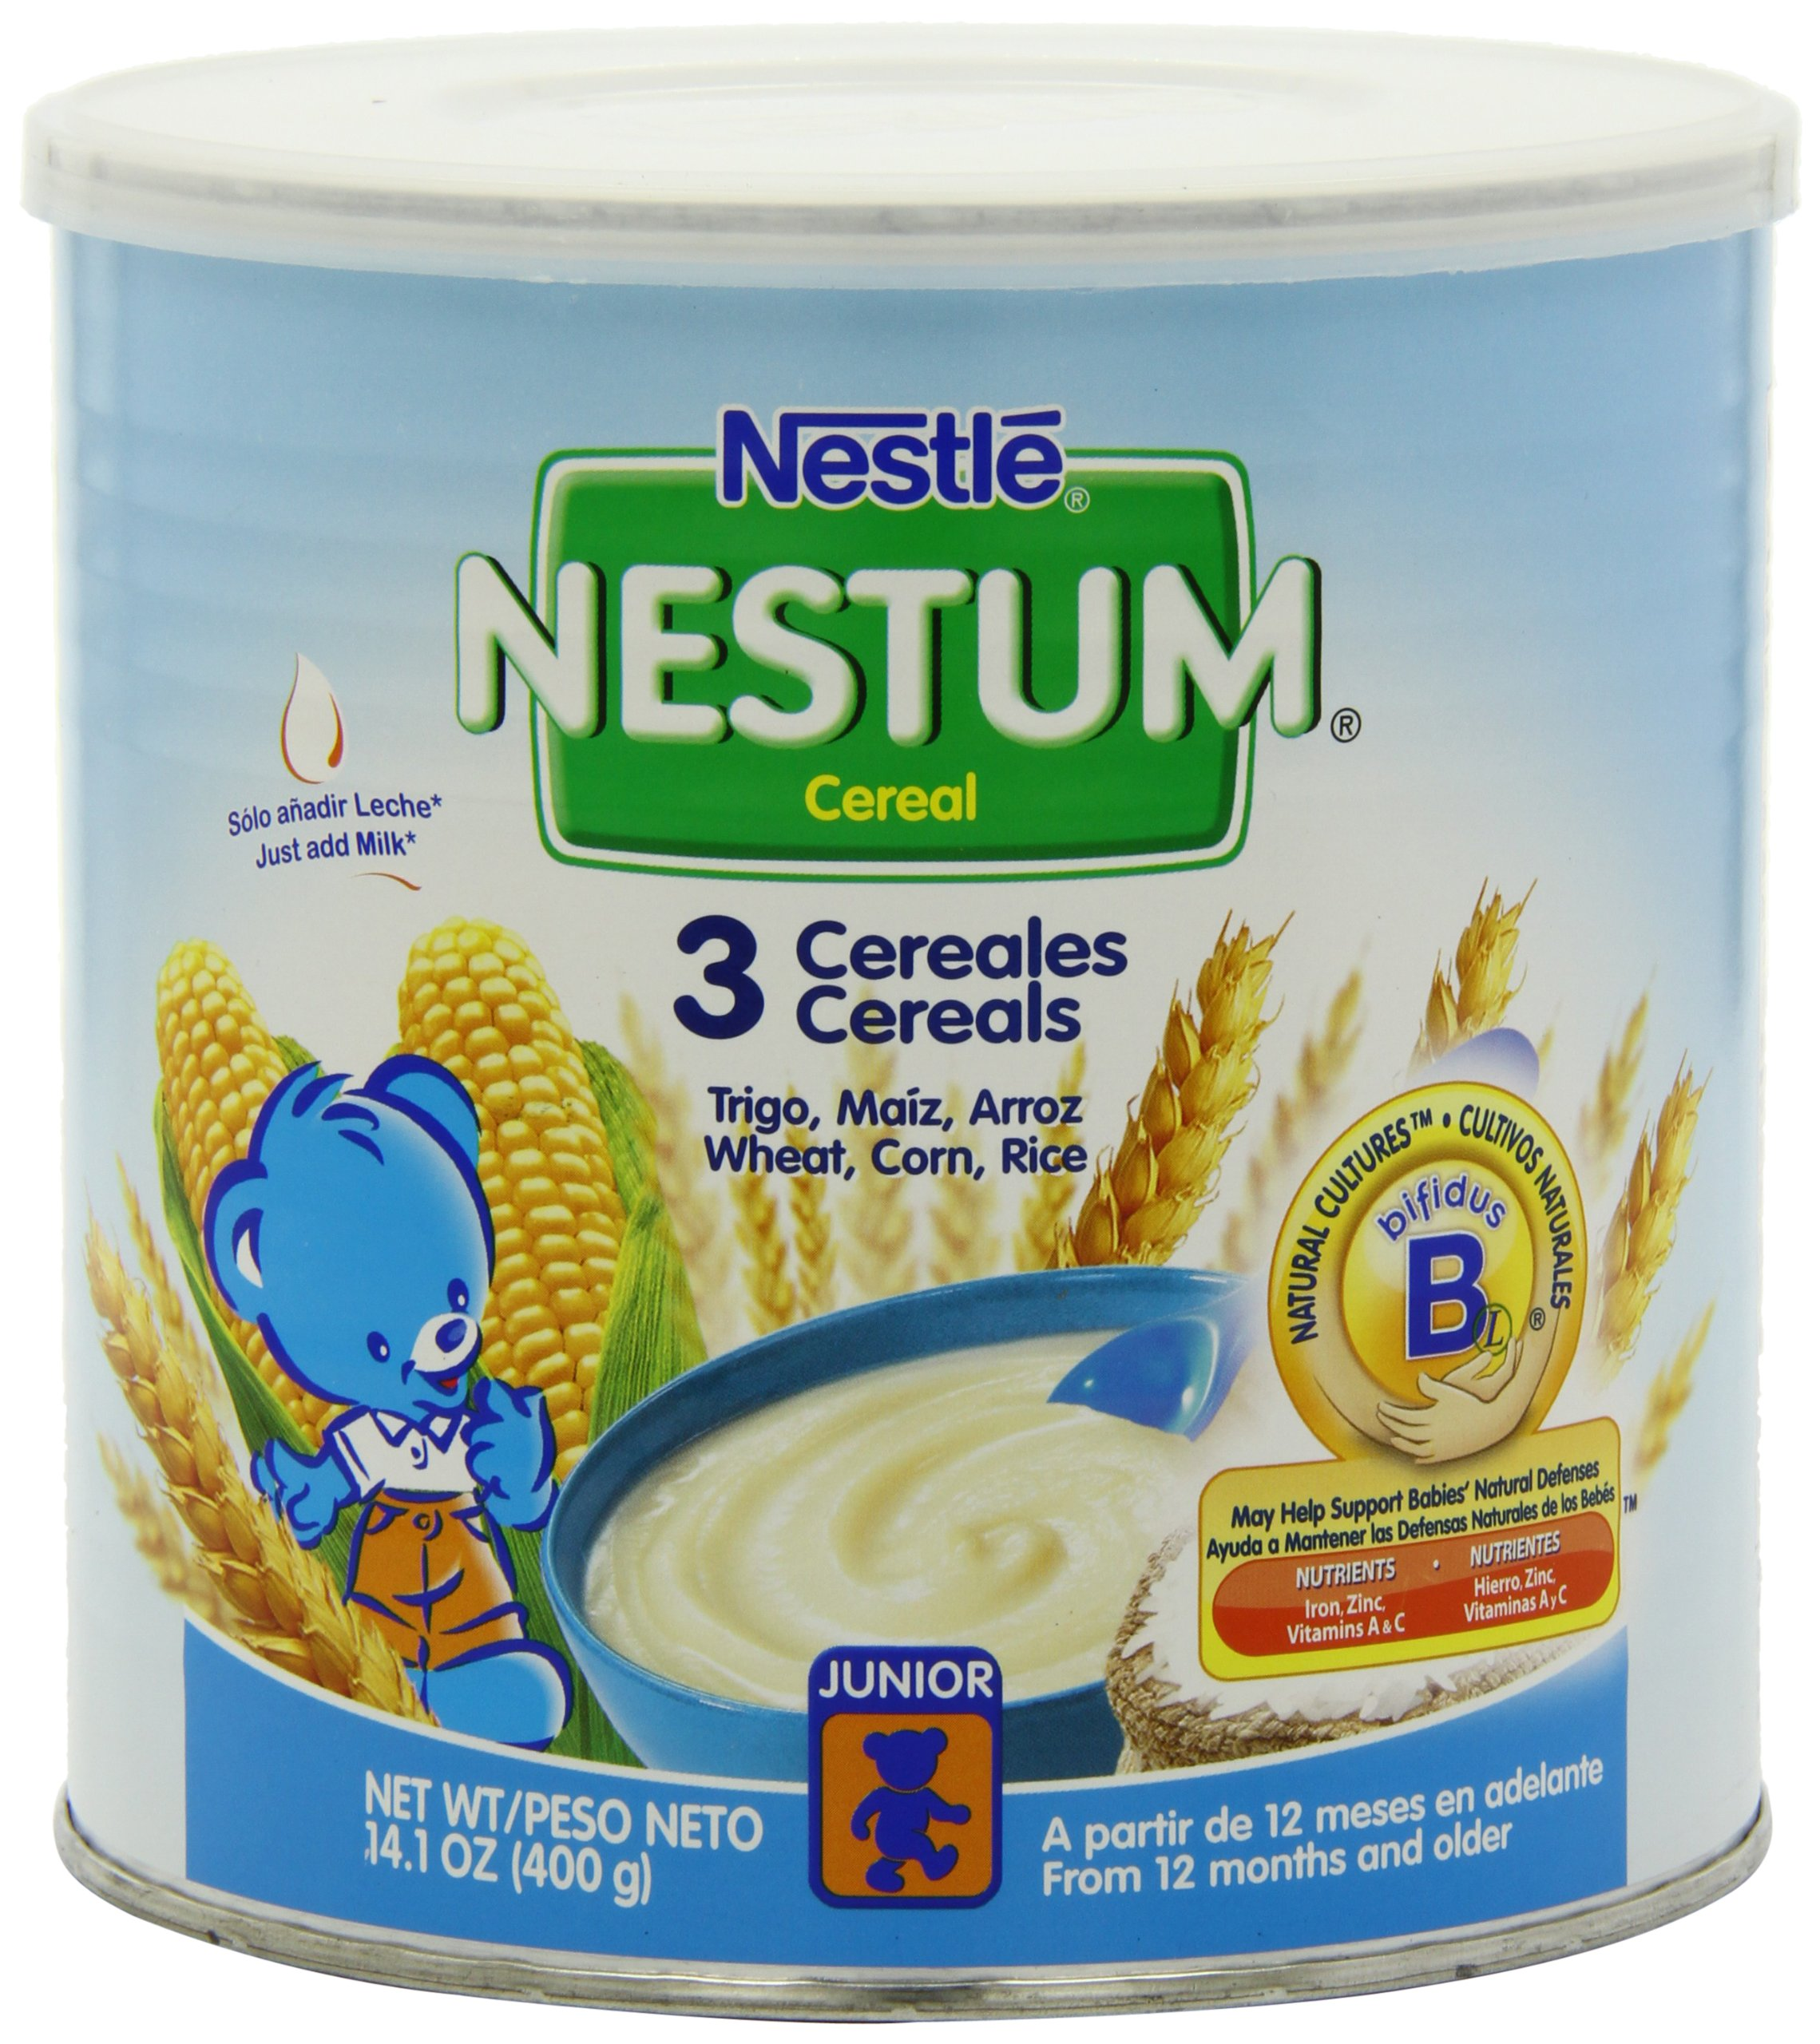 Nestle Nestum 3 Cereals, 14.1-Ounce (Pack of 6) by Gerber Baby Cereal